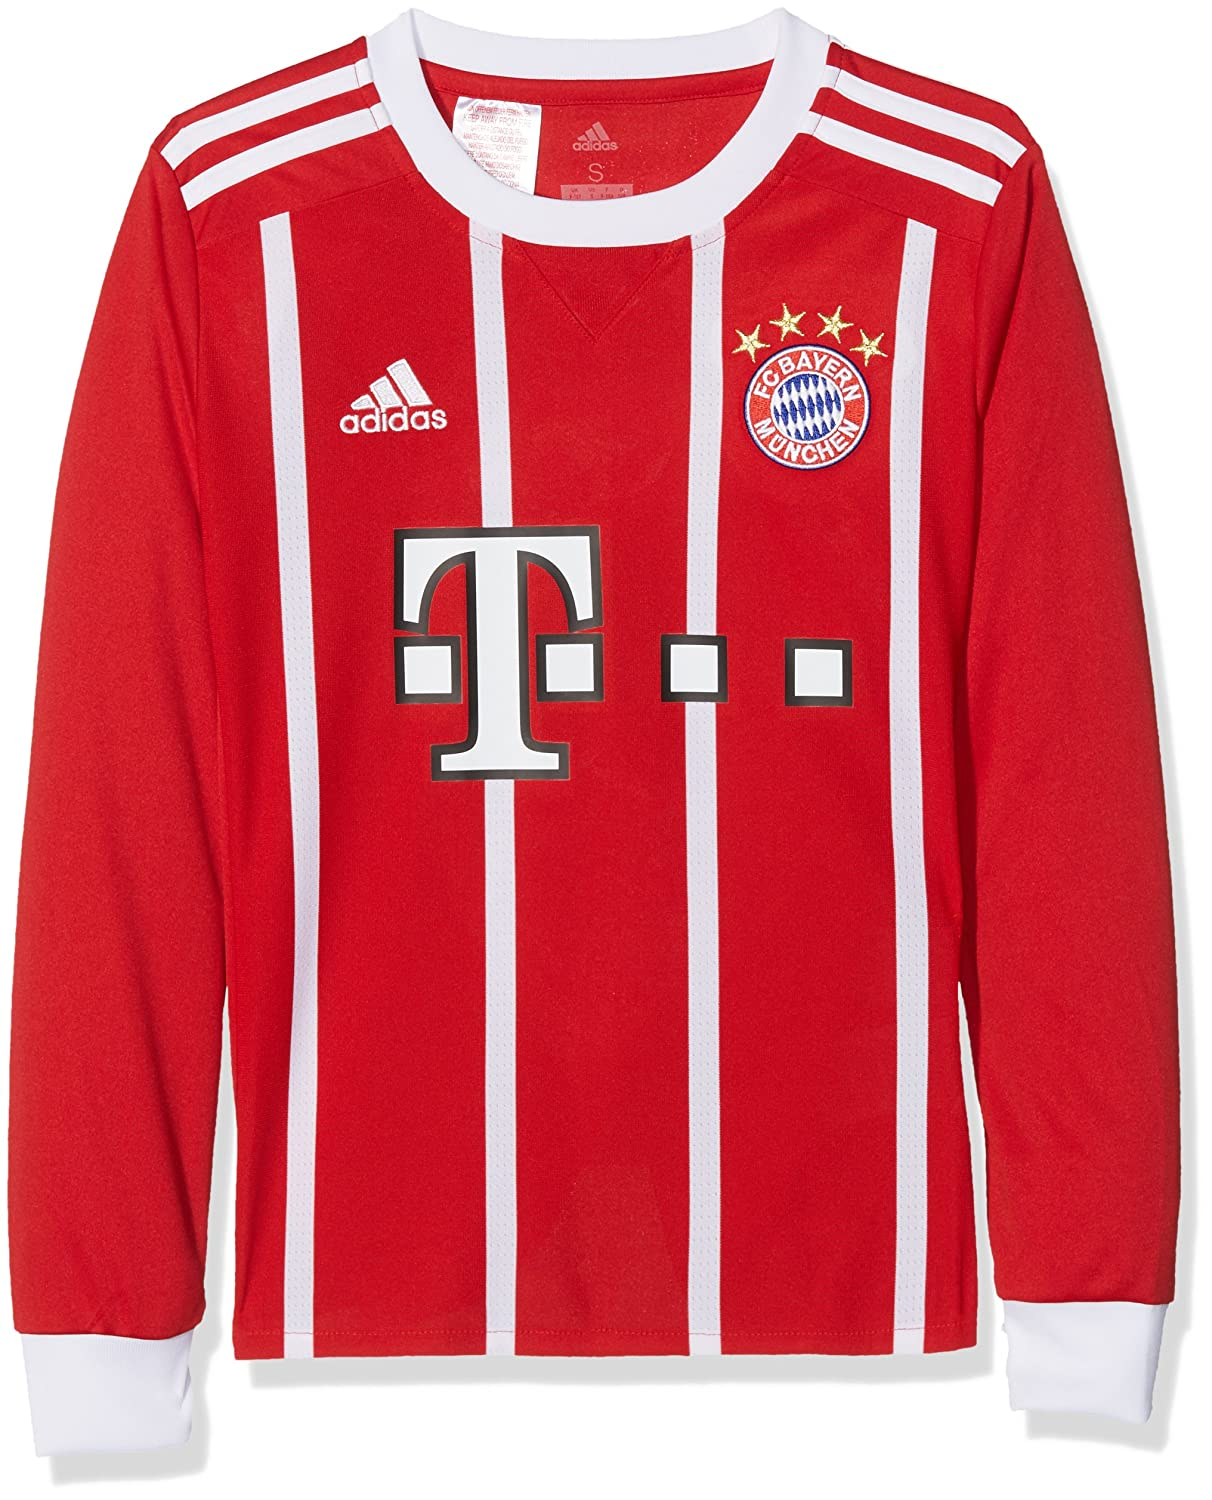 ADIDAS Kinder Fc Bayern München Home Replica Jersey Longsleeve Youth 2017 18 Langarmtrikot